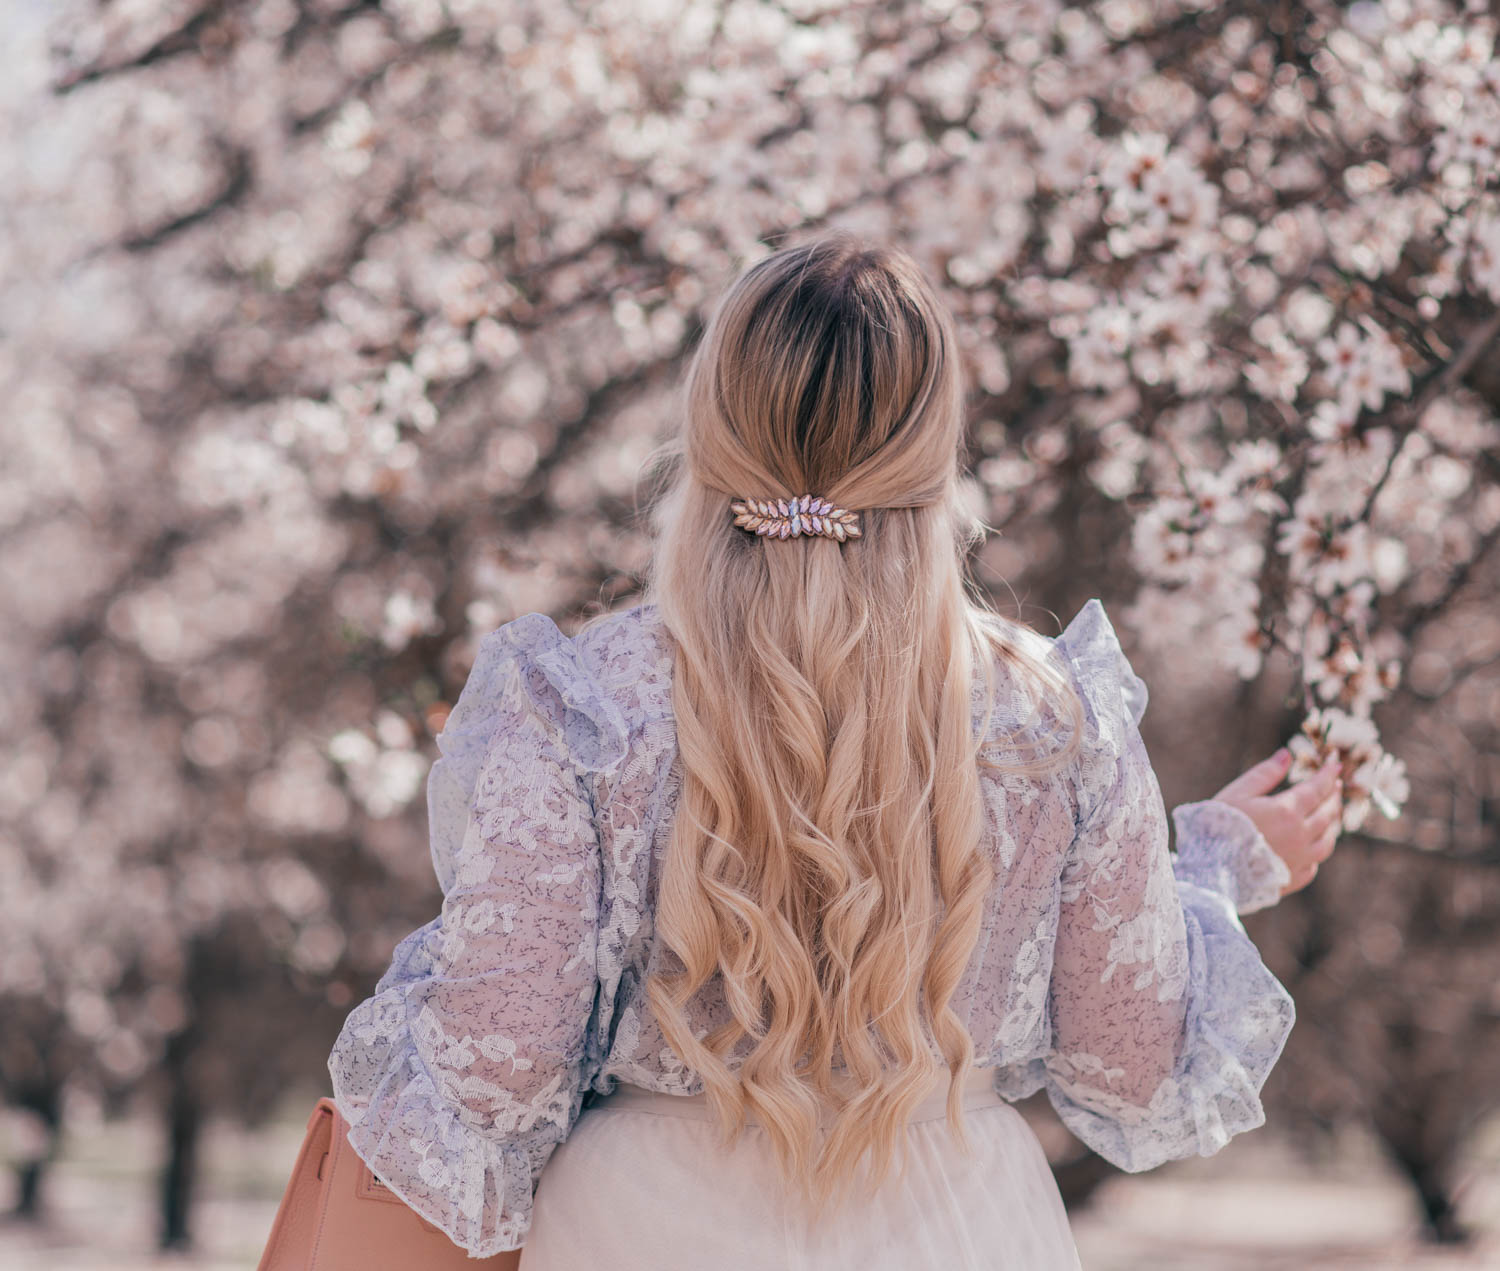 Fashion Blogger Elizabeth Hugen styles a Feminine Easter Outfit for Spring with a Chicwish top and tulle skirt and Alexandre de Paris hair barrette